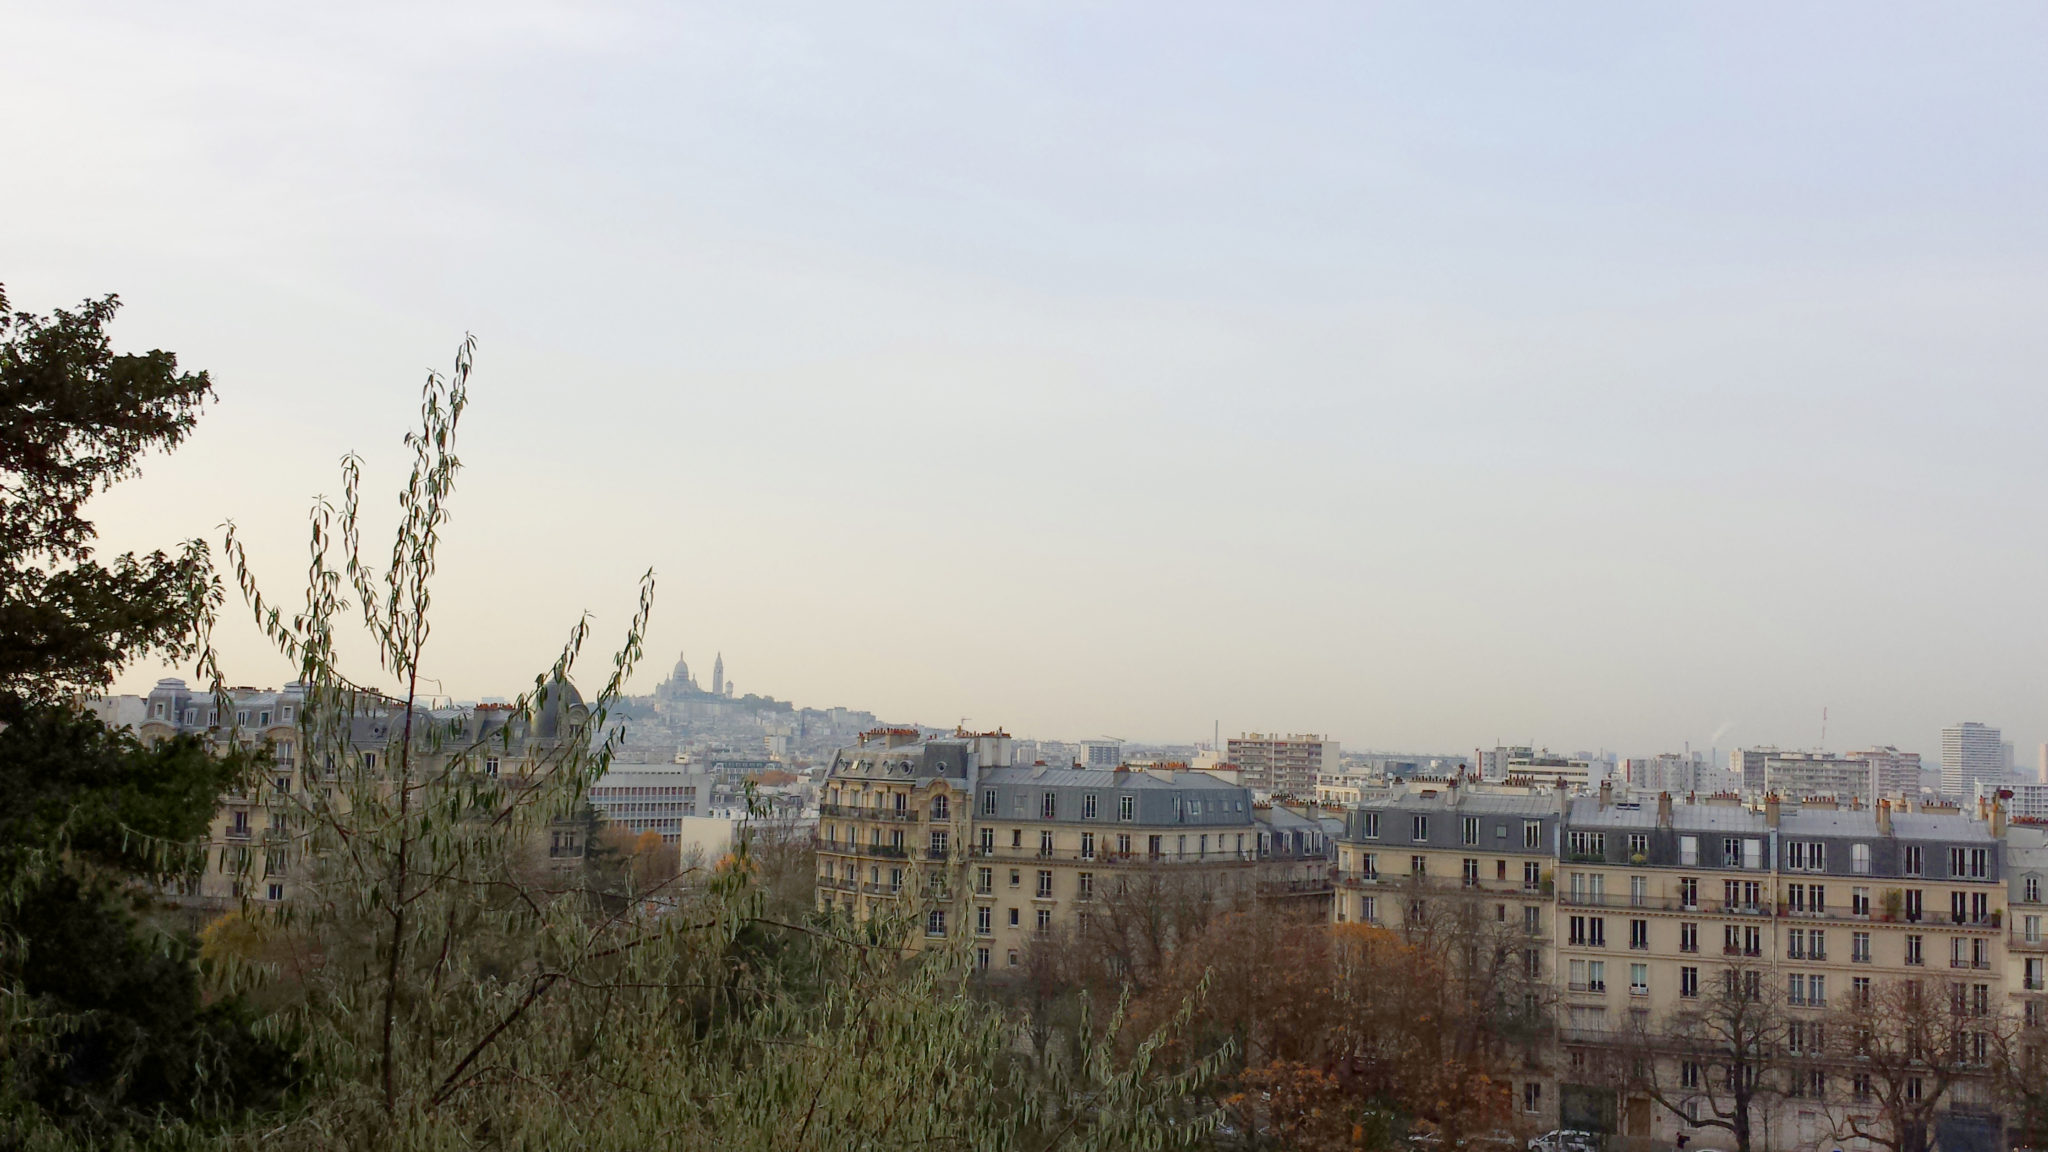 Hema_Paris_Buttes_de_chaumont_panorama_view